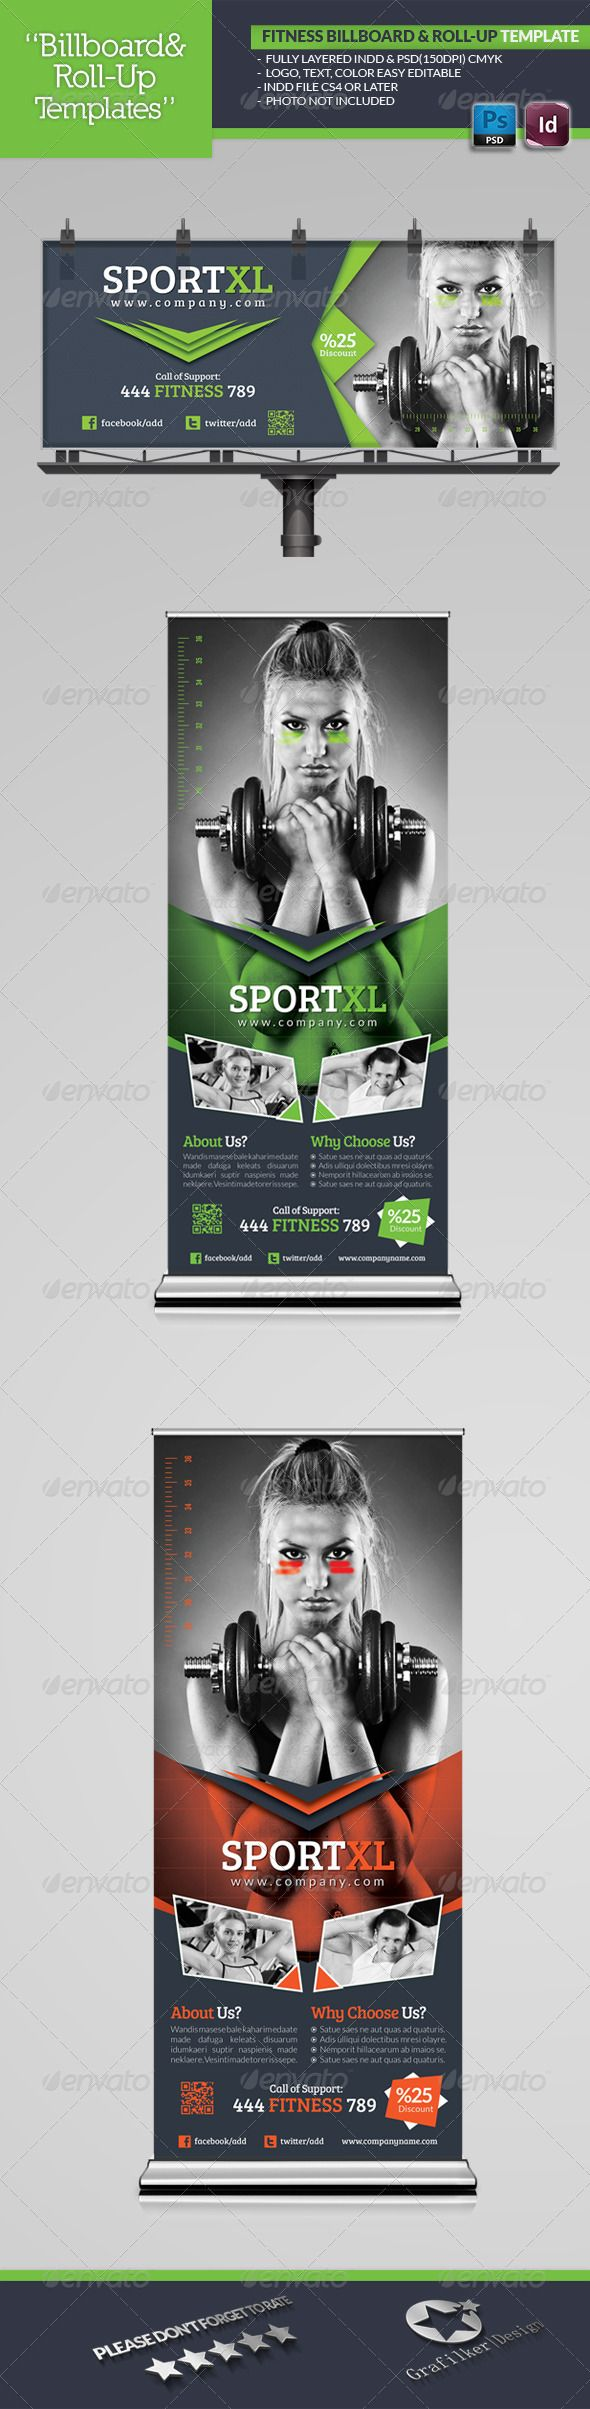 Fitness Billboard & Roll-Up Template #design Download: http://graphicriver.net/item/fitness-billboard-rollup-template/5014982?ref=ksioks